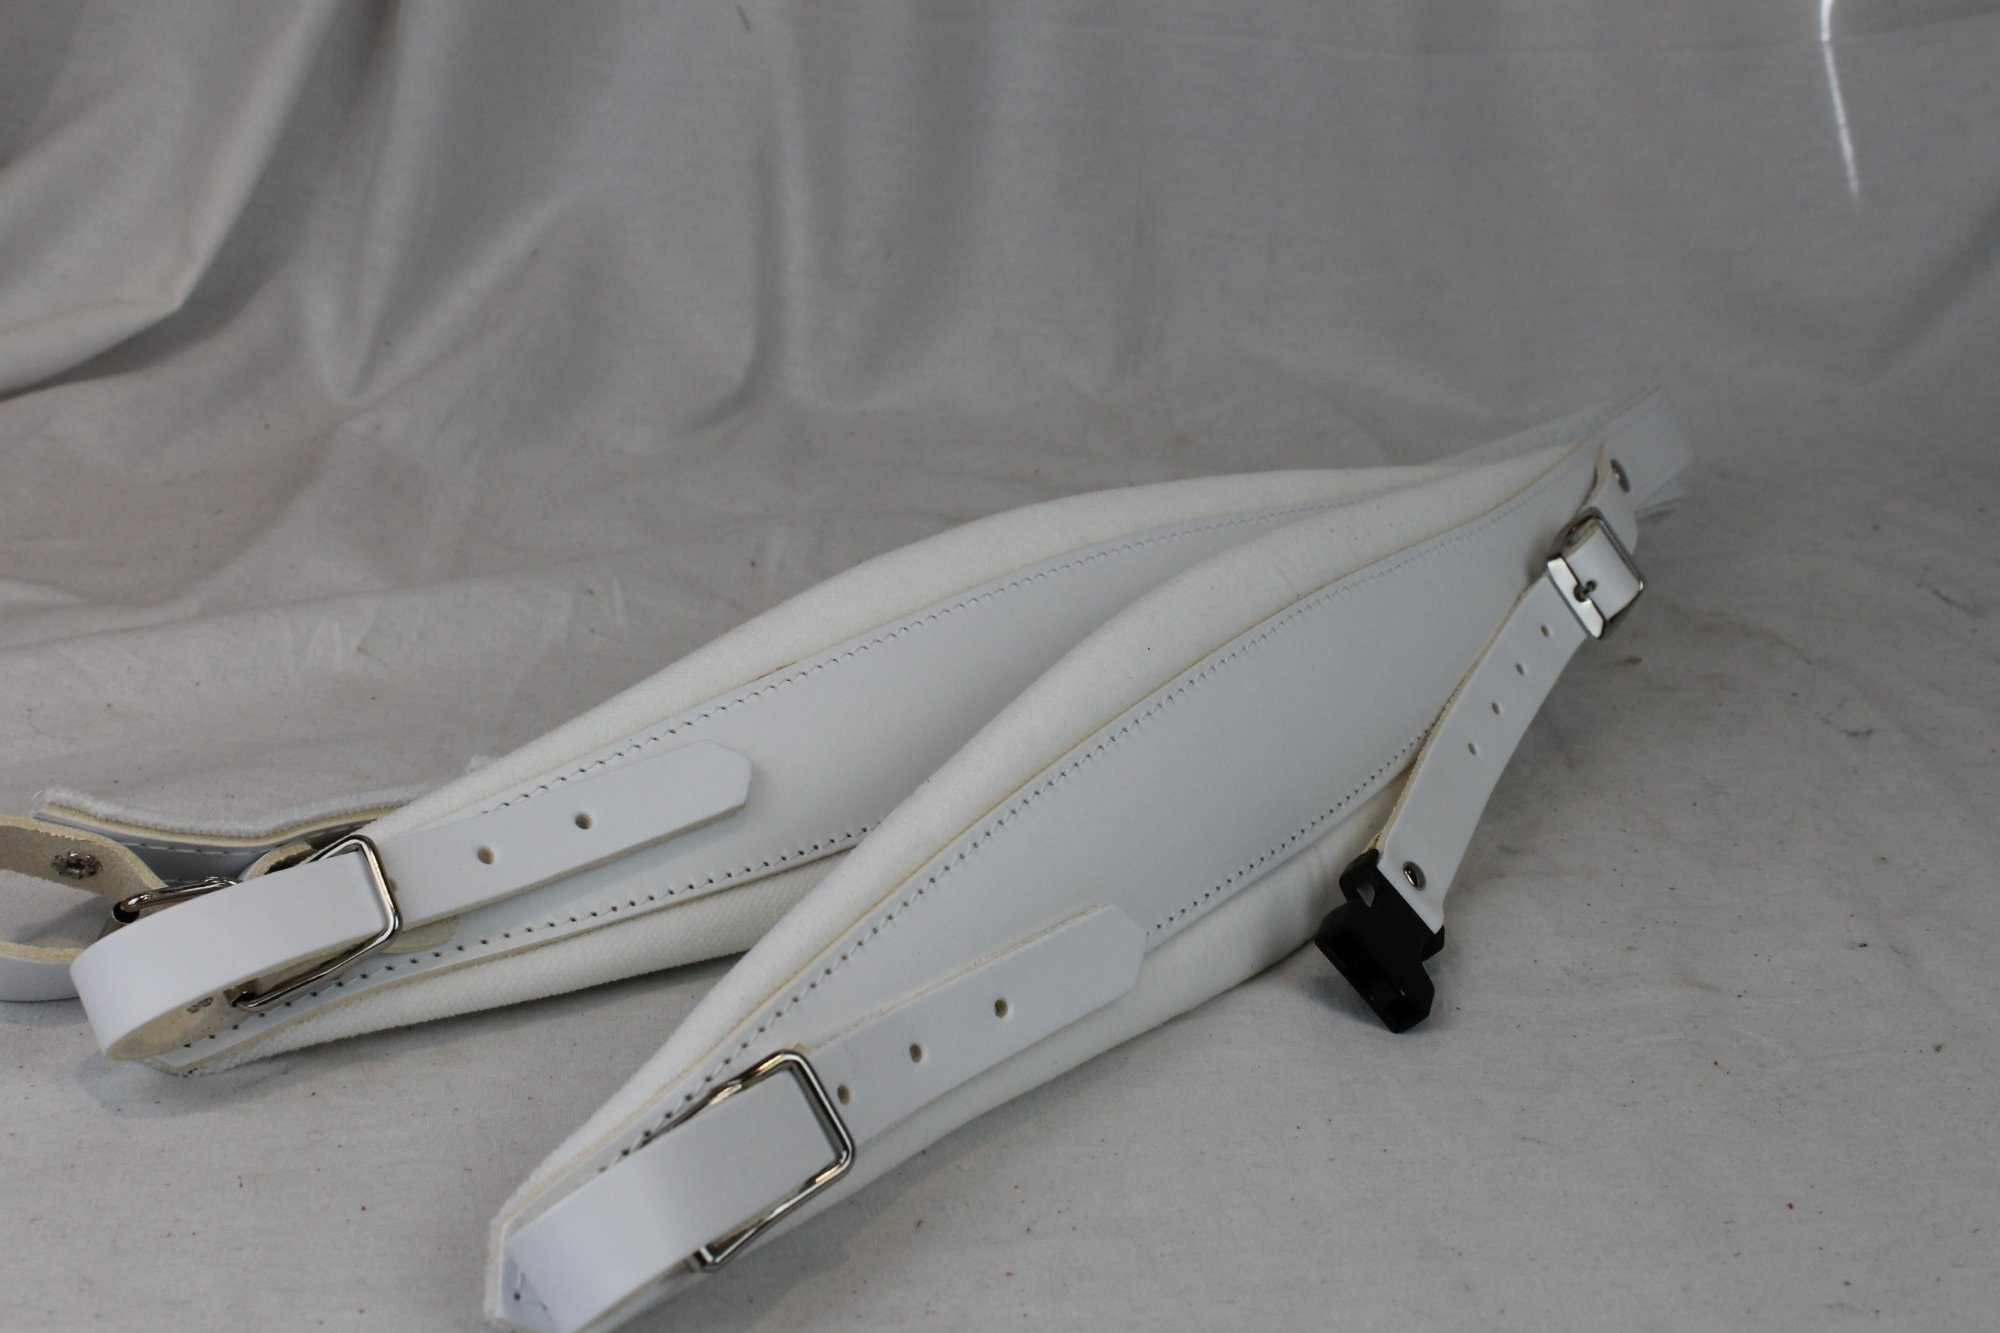 New White Leather Velour Fuselli Accordion Shoulder Straps Width (9cm / 3.5 inch) Length (105cm-123cm / 41.3-48.4 inch)